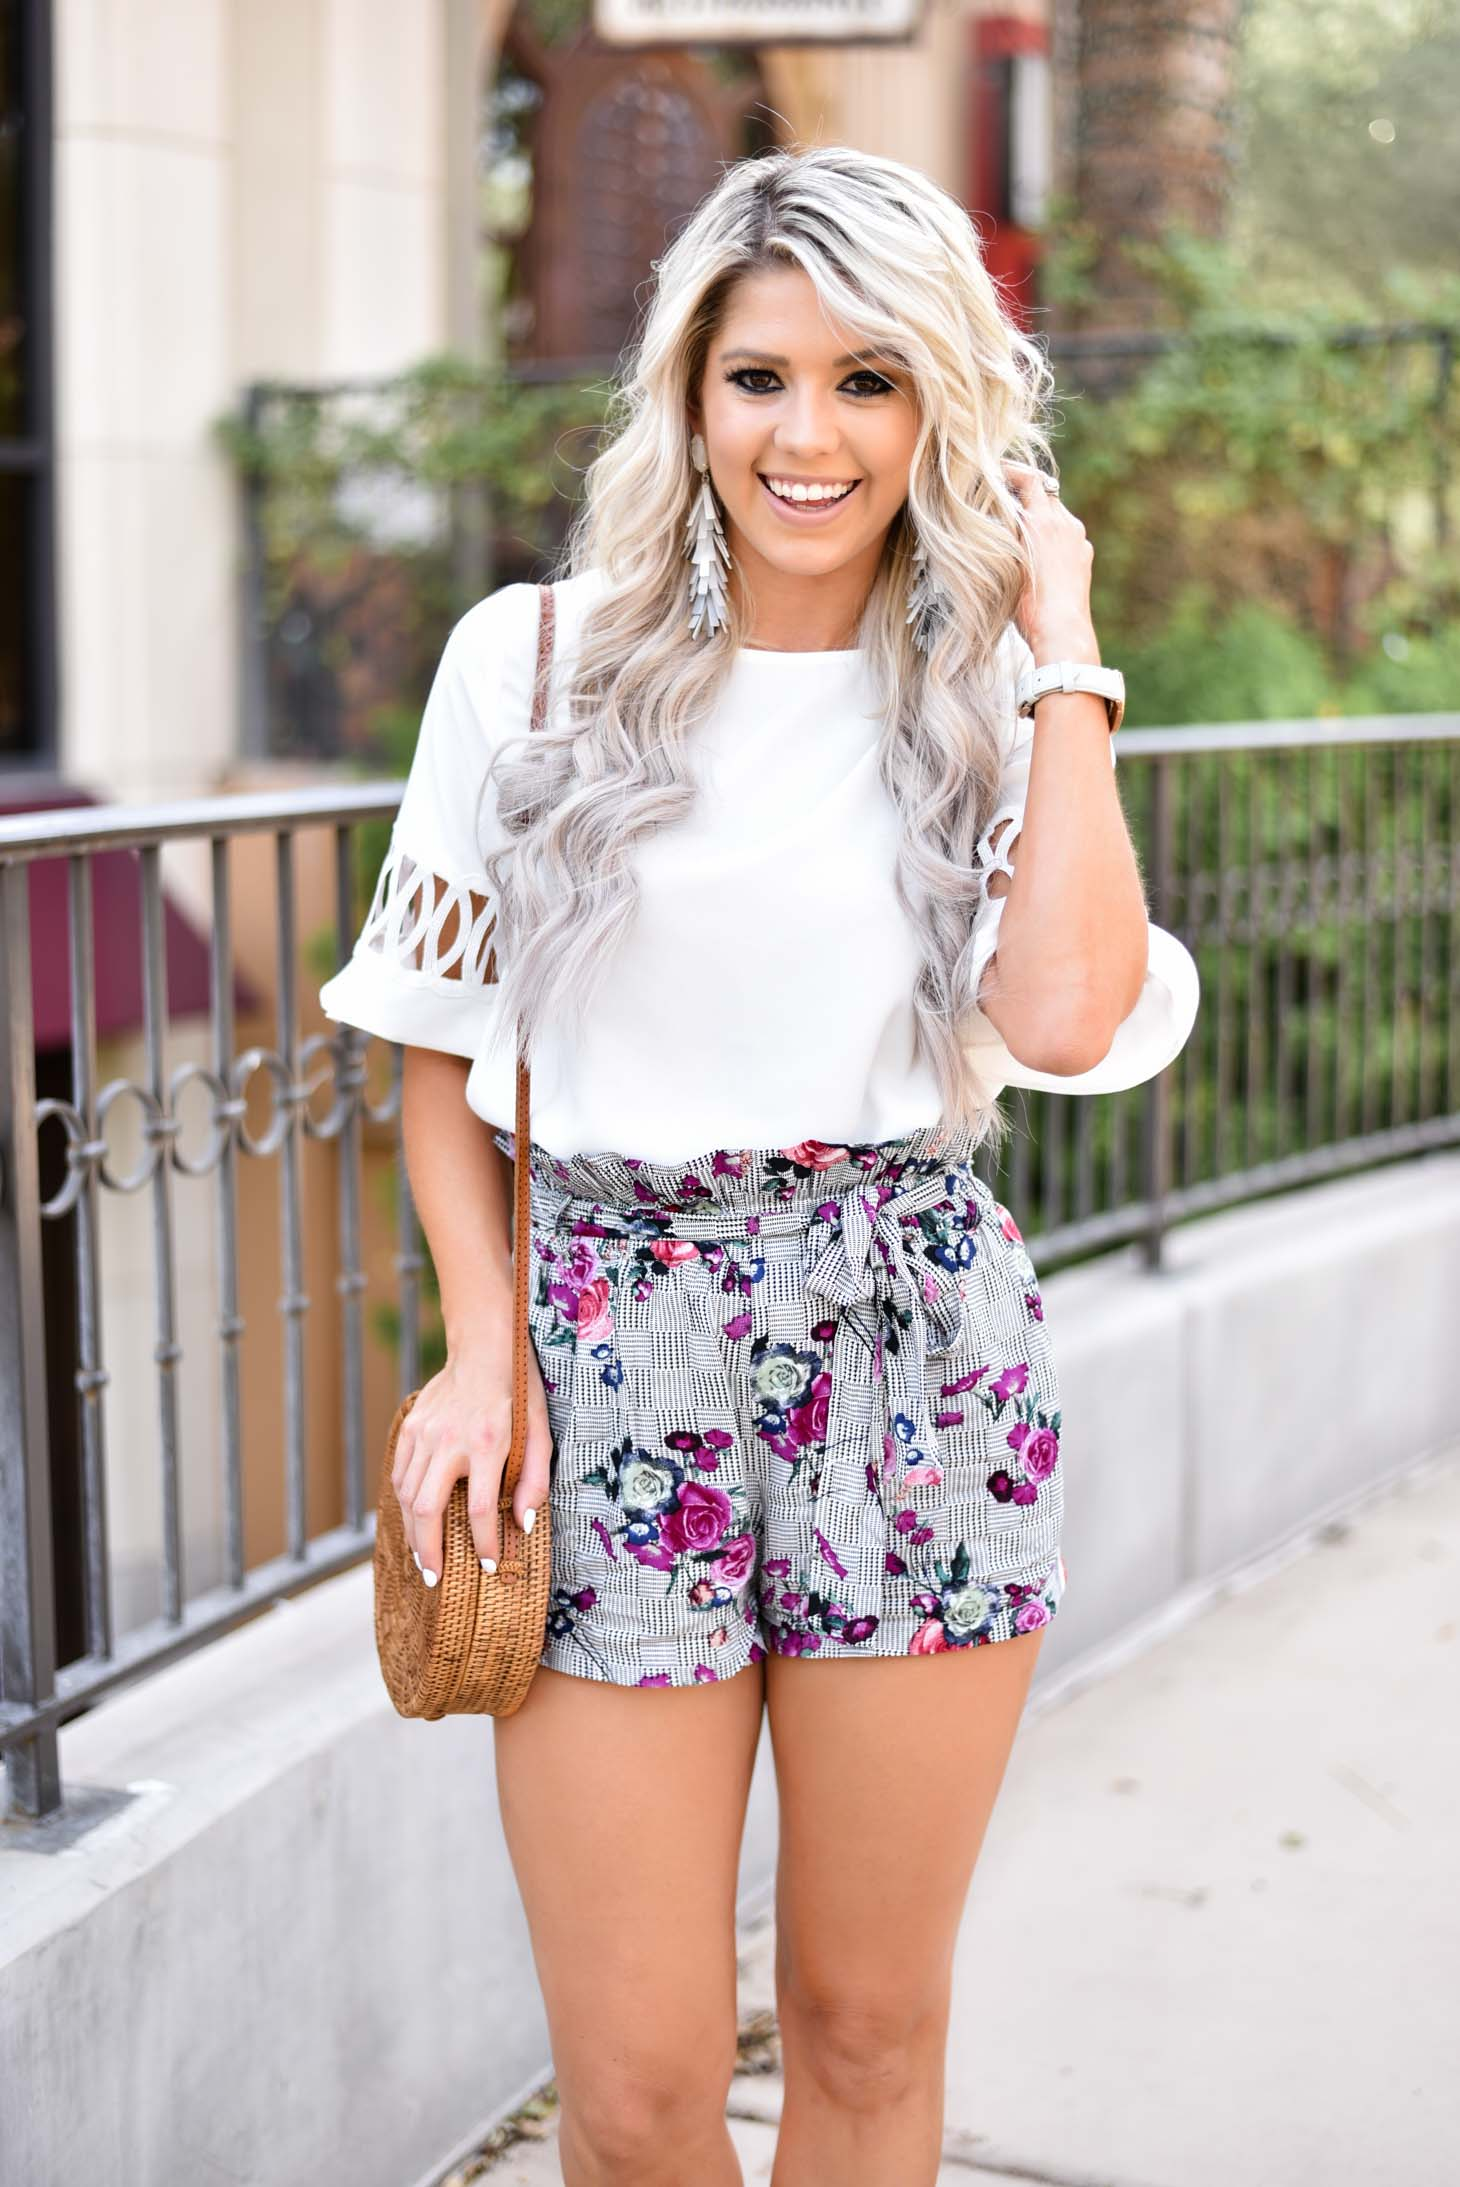 Erin Elizabeth of Wink and a Twirl shares the cutest pair of high waist shorts and white blouse from Shop Sugar Lips